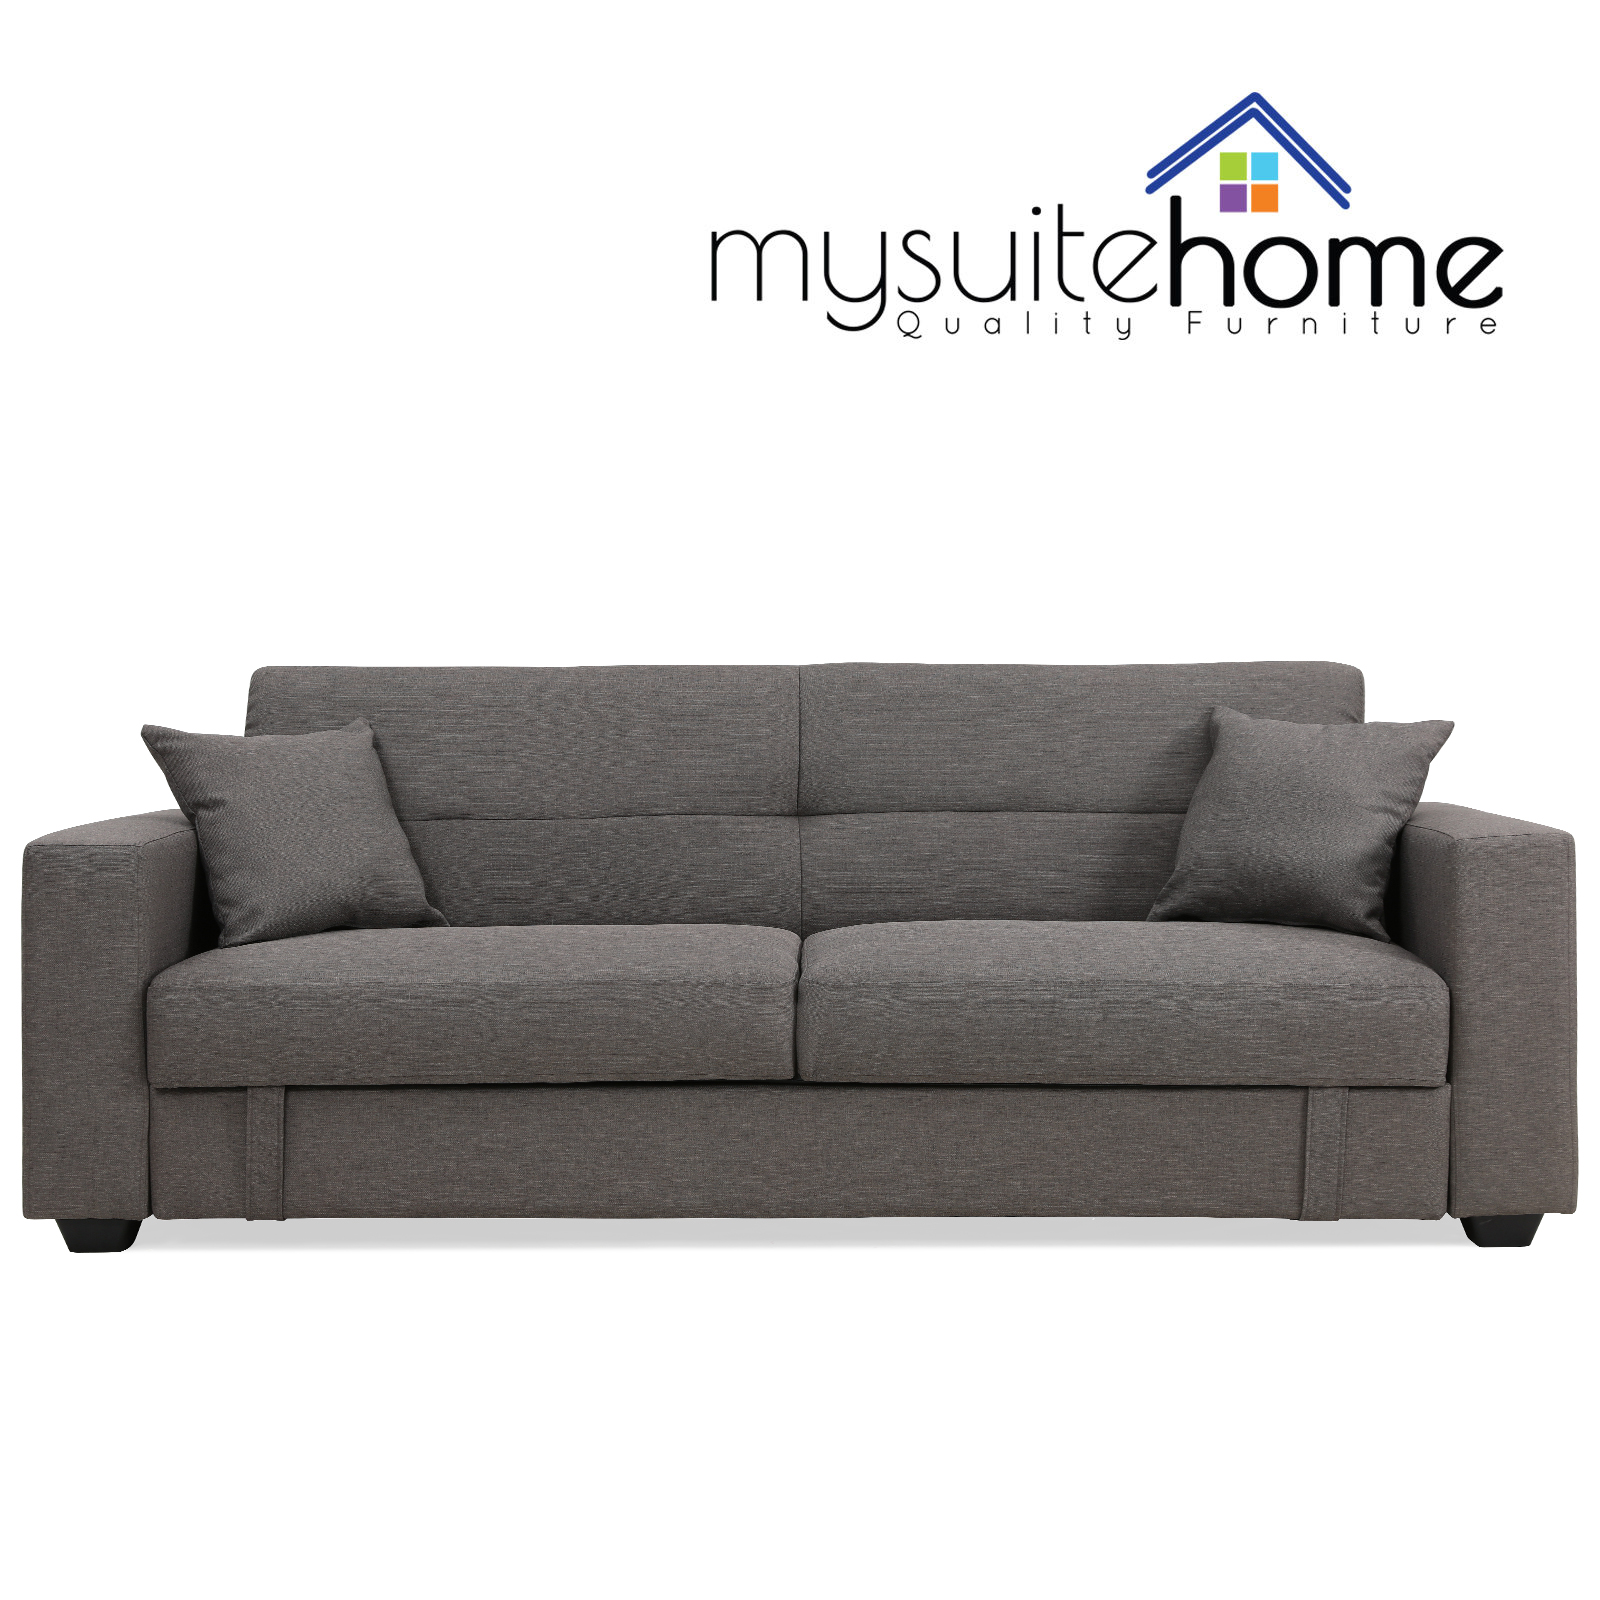 Erica Click Clack Contemporary Fabric 3 Seater Sofa Bed Lounge with ...